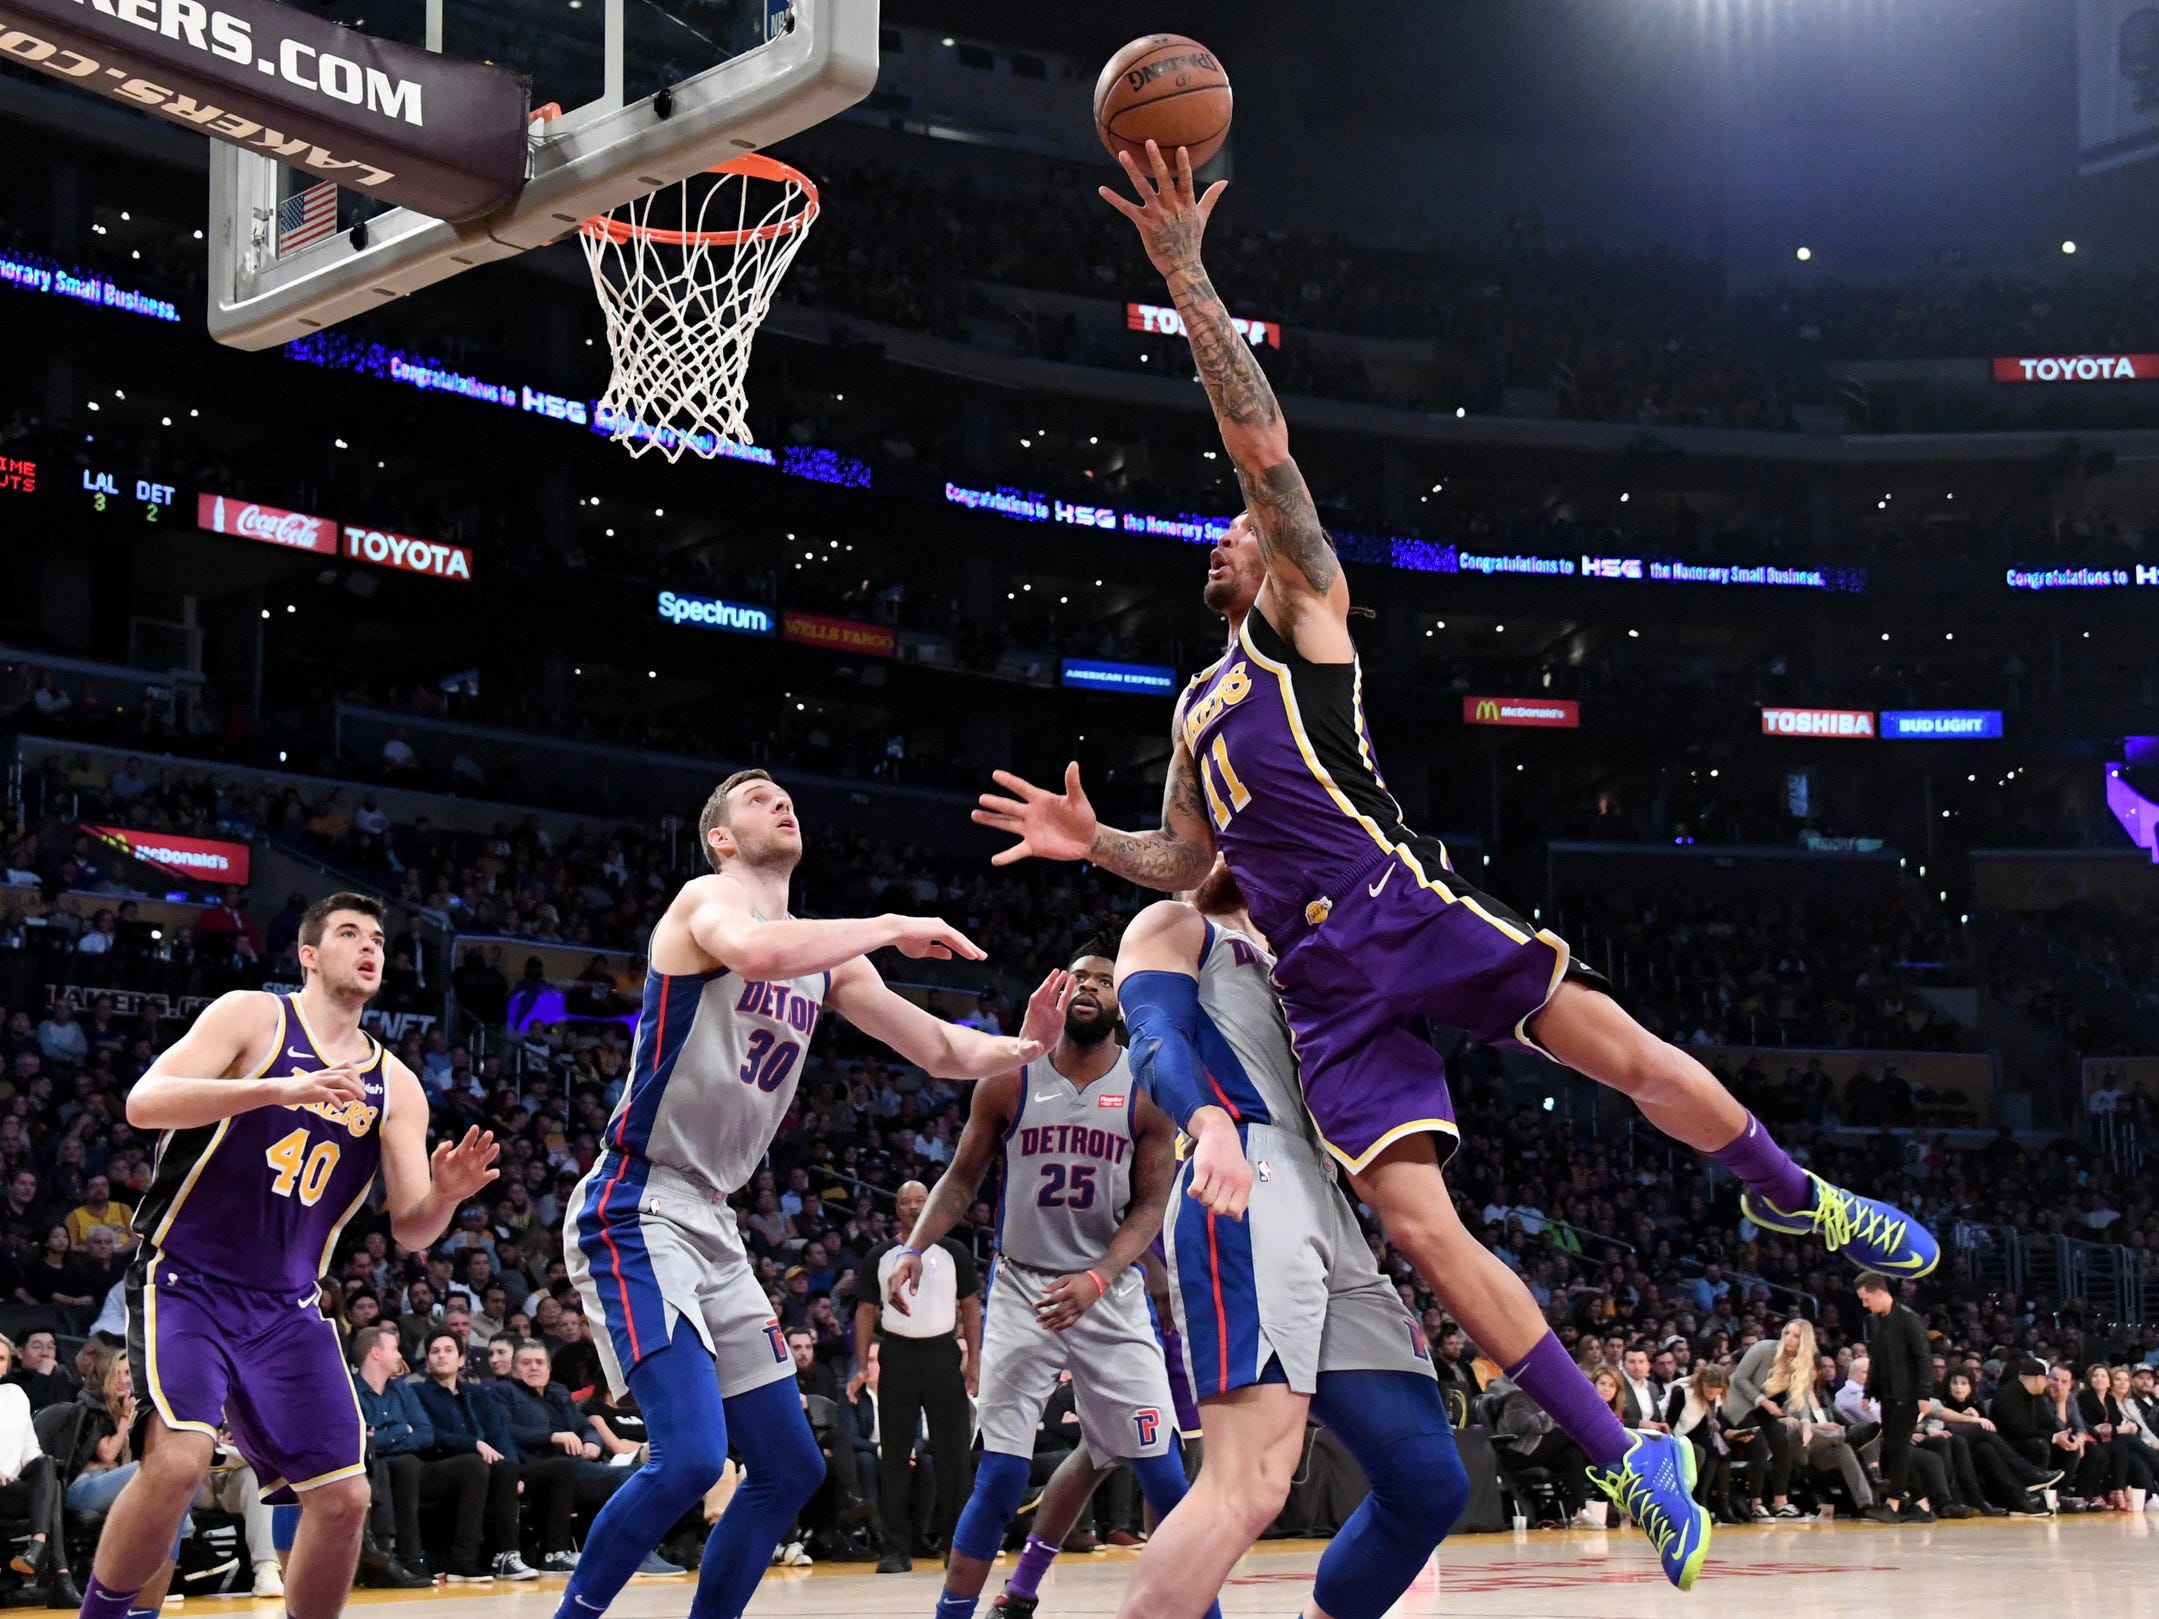 Detroit Pistons forward Blake Griffin (23) applies pressure to Los Angeles Lakers forward Michael Beasley (11) during the second half at the Staples Center on Wednesday, Jan. 9, 2019, in Los Angeles.